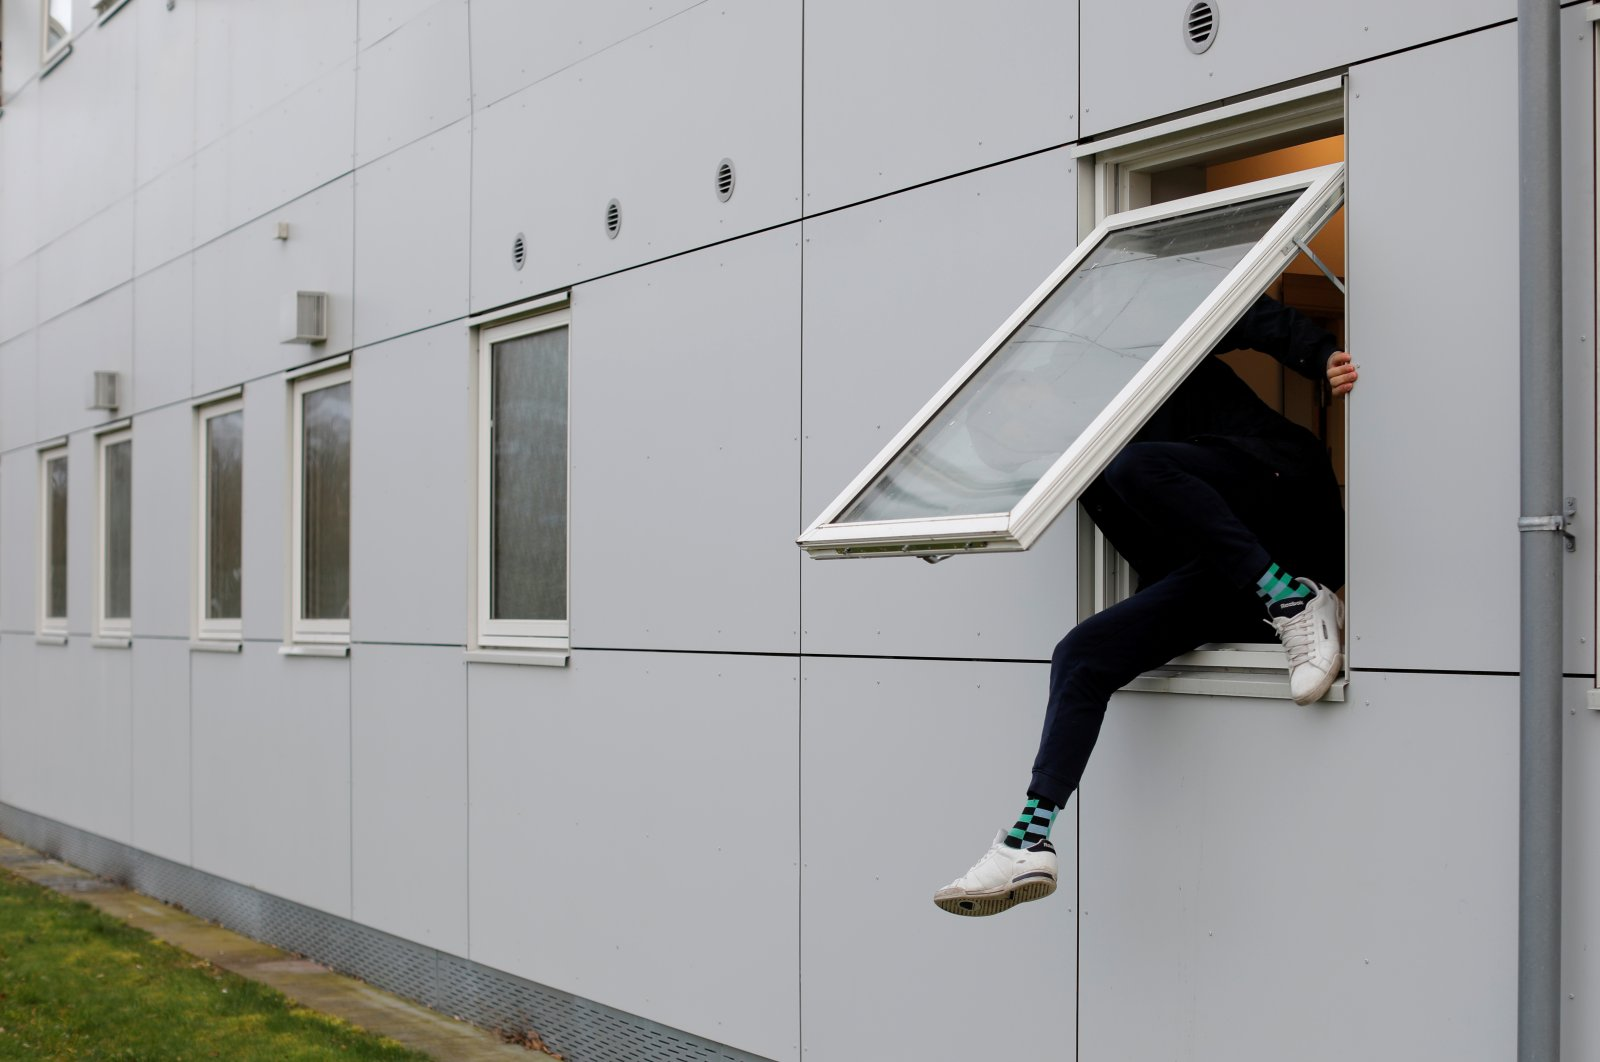 A resident climbs through a window at Kaershovedgaard, a former prison and now a departure center for rejected asylum seekers in Jutland, Denmark, March 26, 2019. (Reuters Photo)